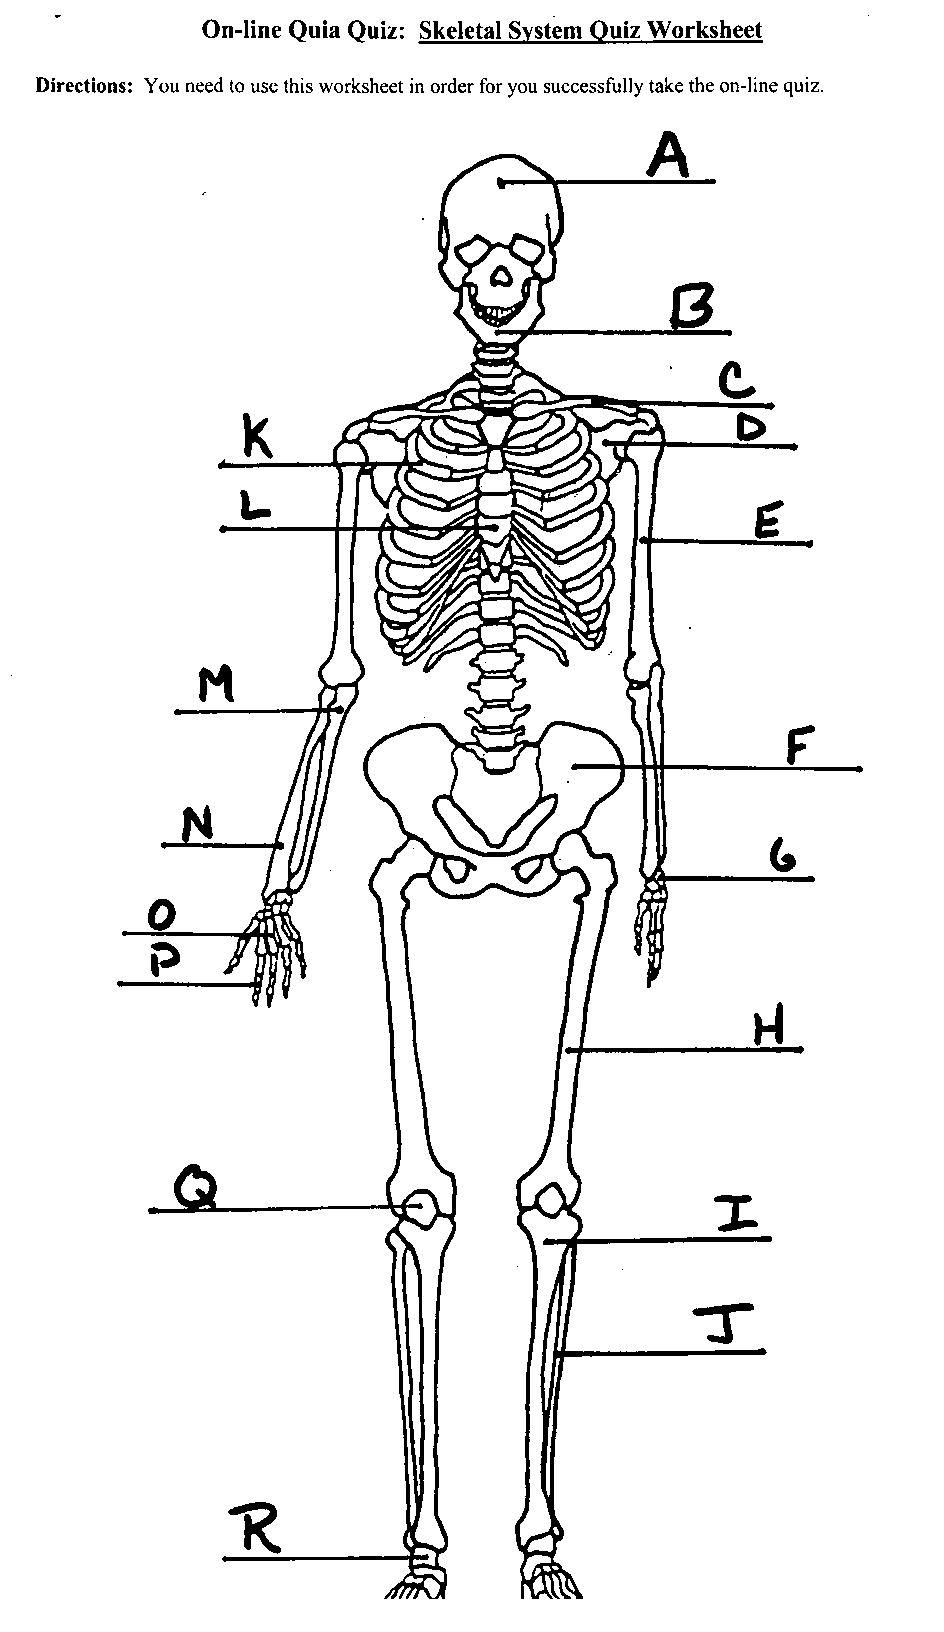 small resolution of unlabeled diagram of the human skeleton unlabeled diagram of the human skeleton human bone structure